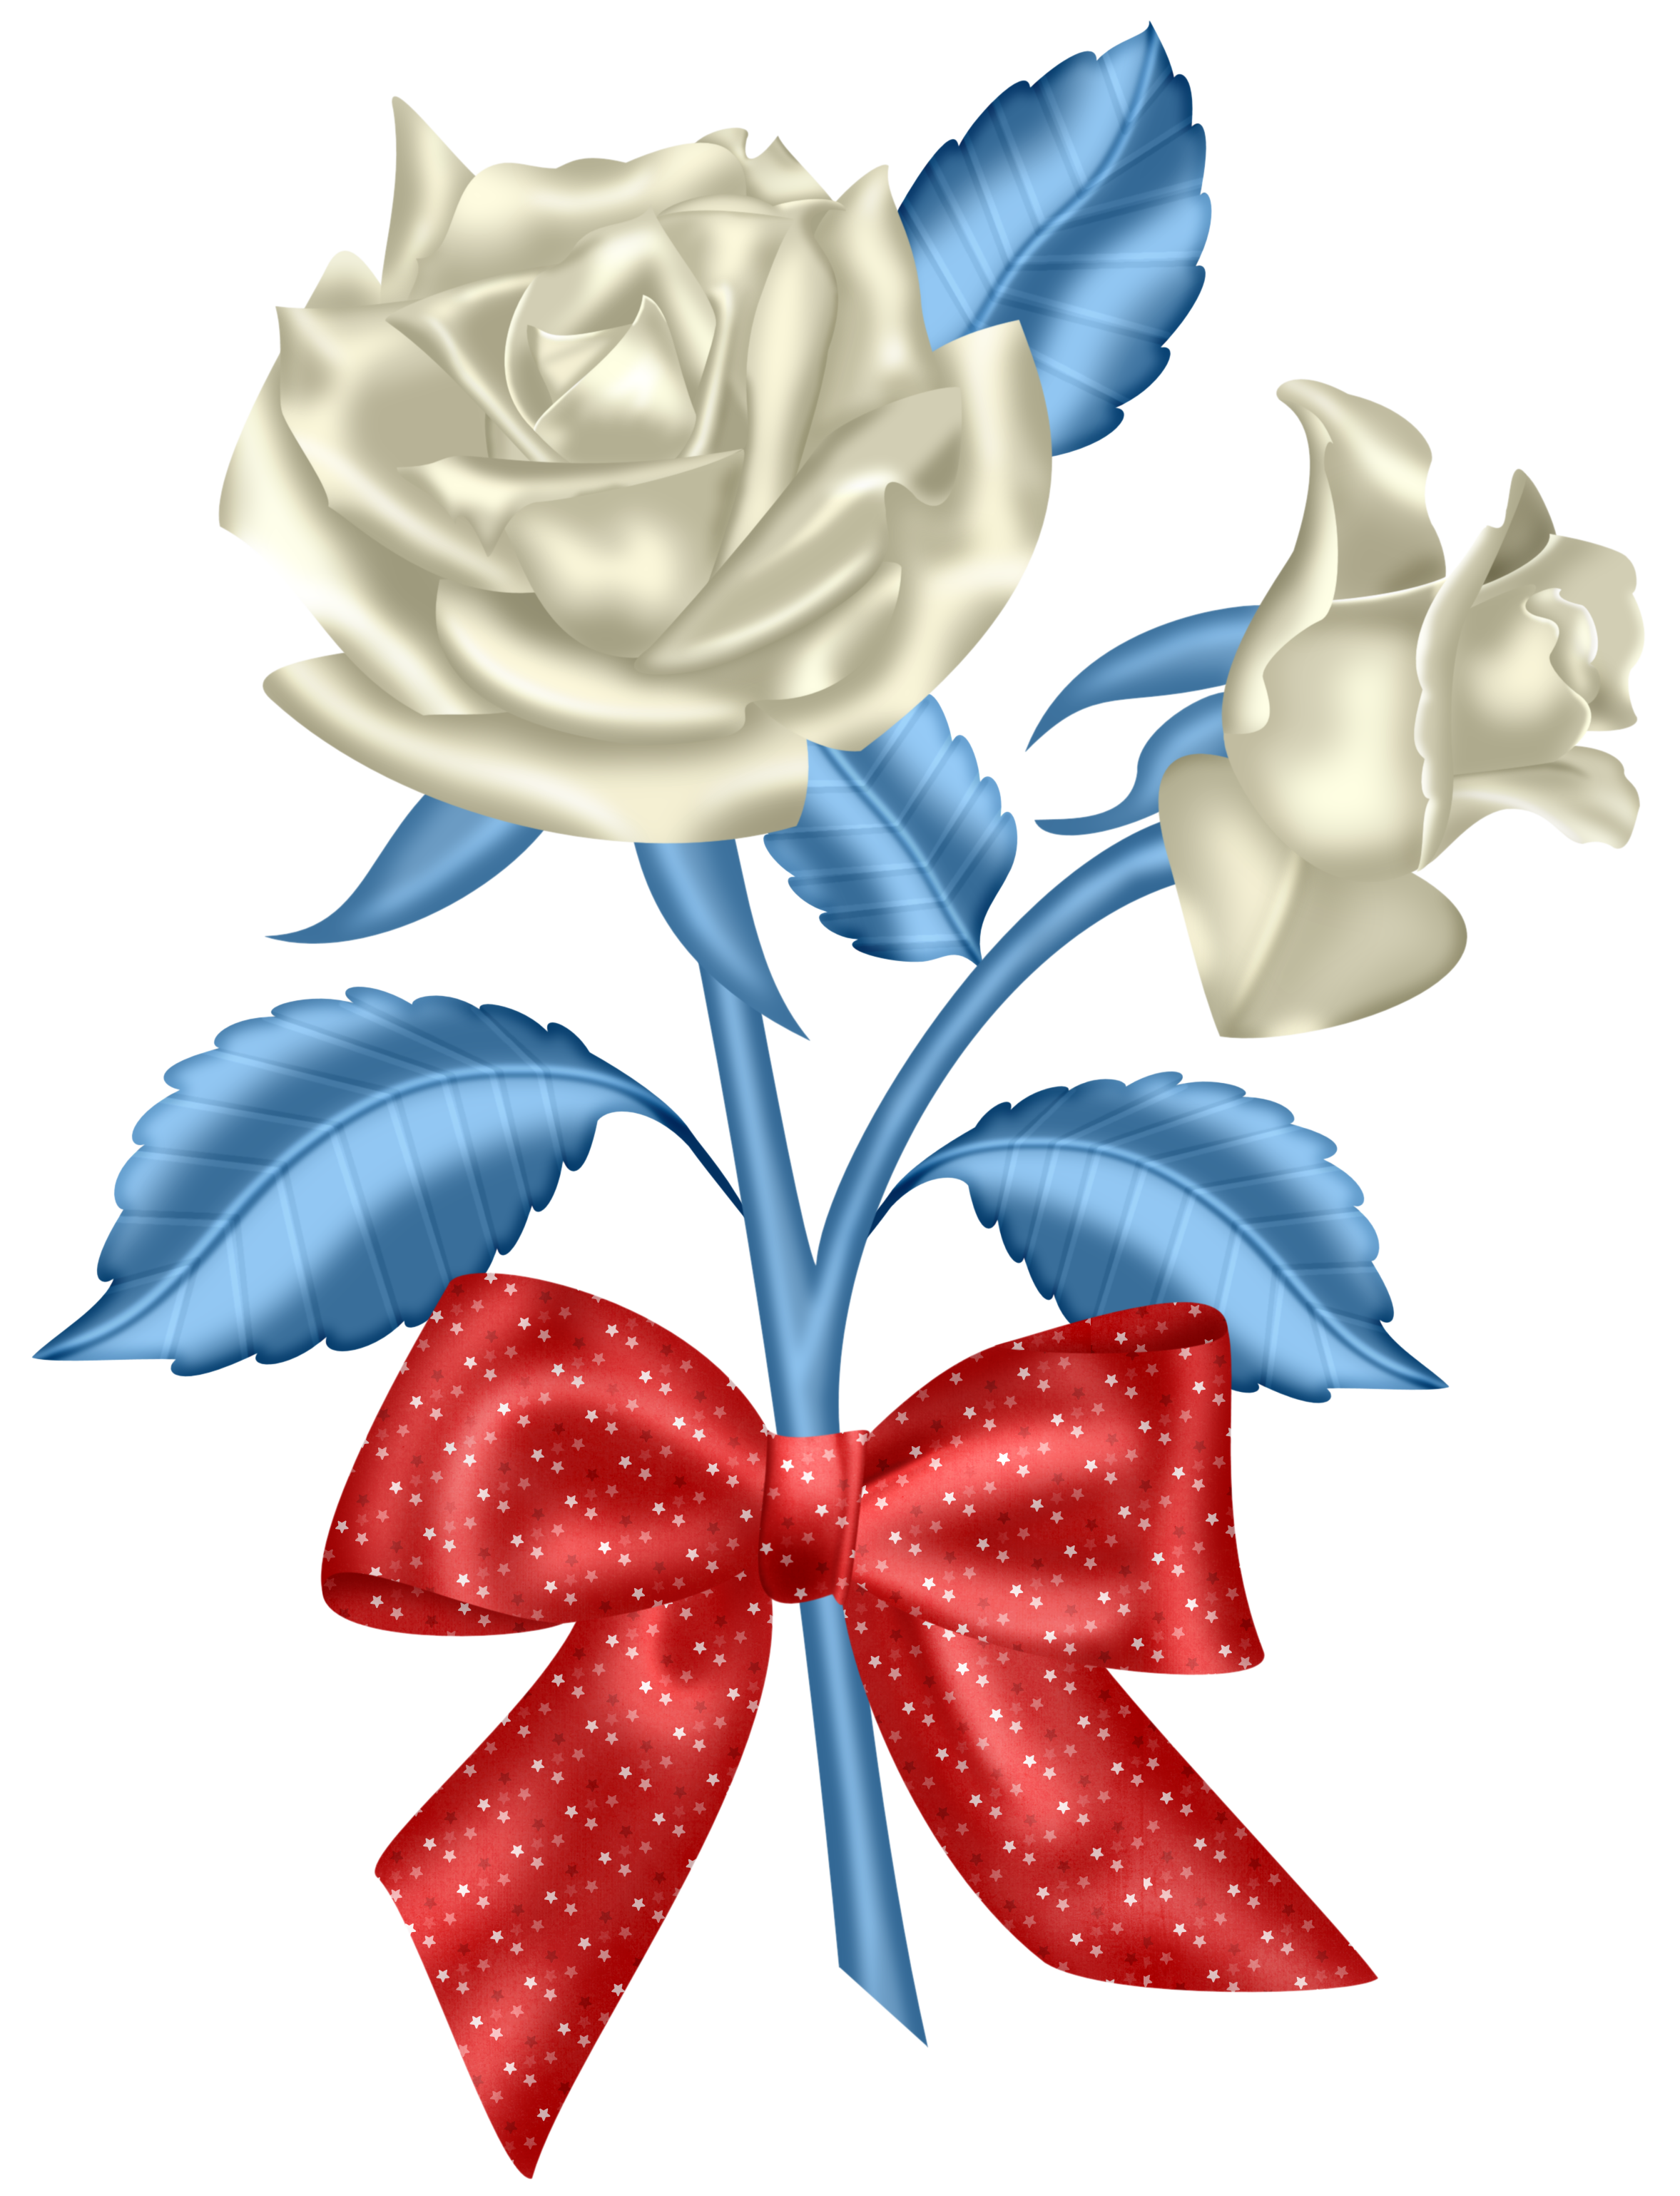 July flower clipart png royalty free library Red White & Blue | Whimsical [1] | Flowers, Garden, Rose png royalty free library